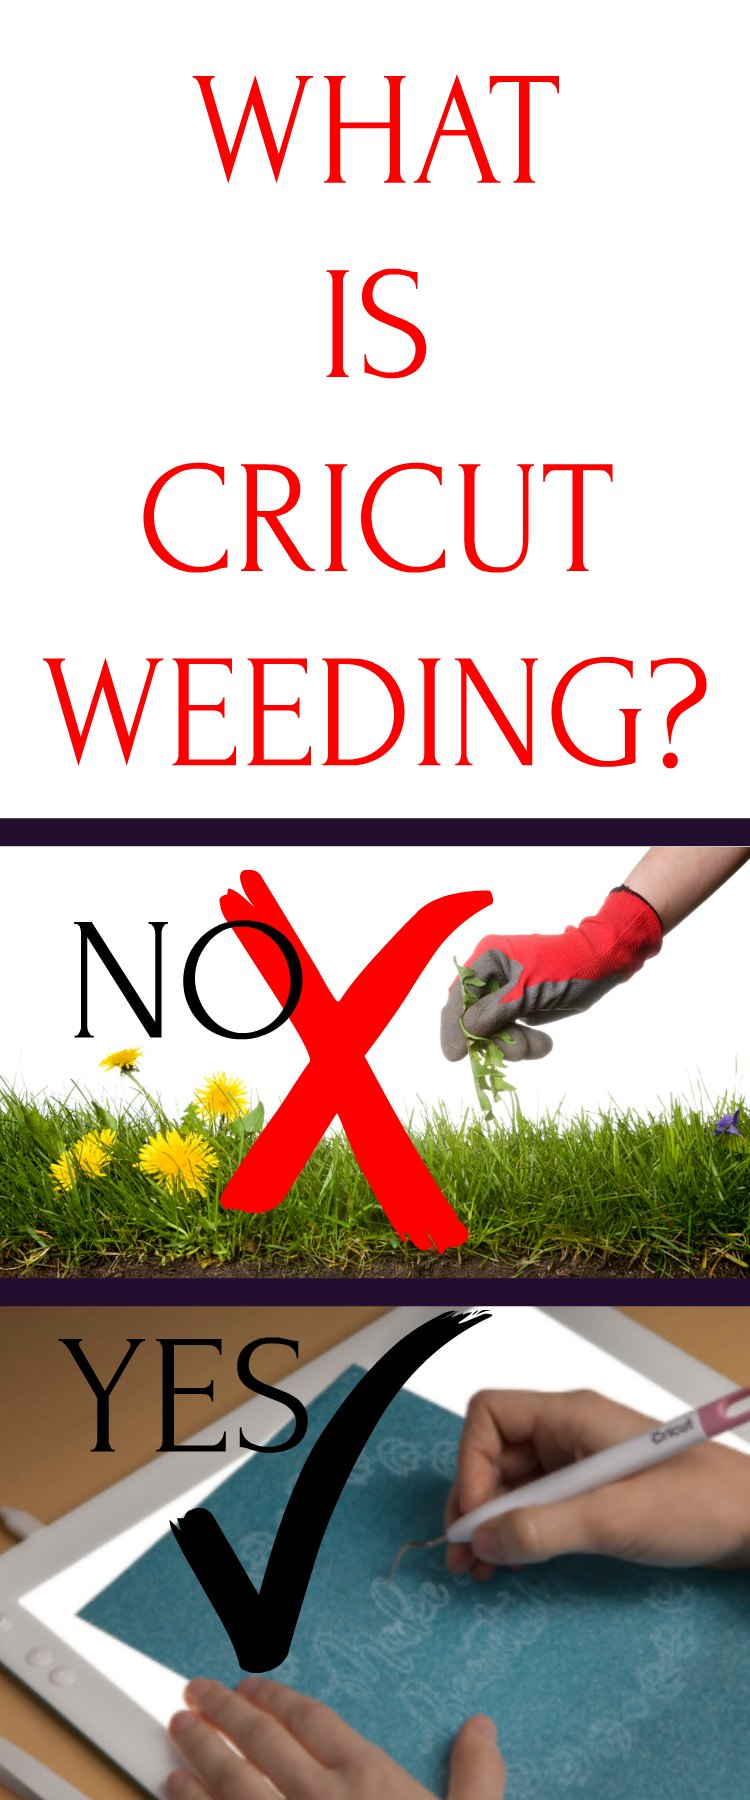 Cricut weeding isn't difficult. Find out my tips and tricks to help you learn how to Cricut Weed. I also put a video tutorial in there. Check it out!